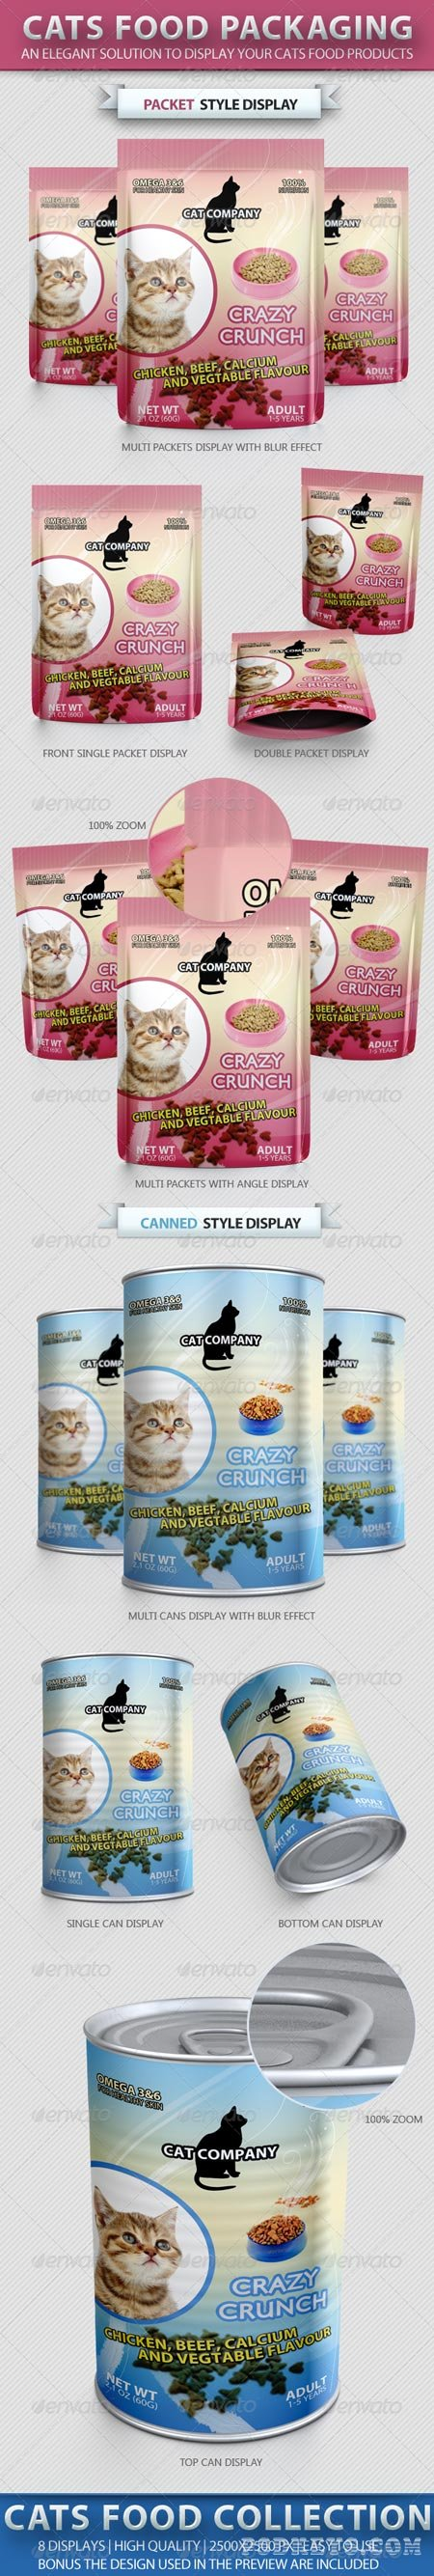 Cats Food Packaging Mock-up 2210444